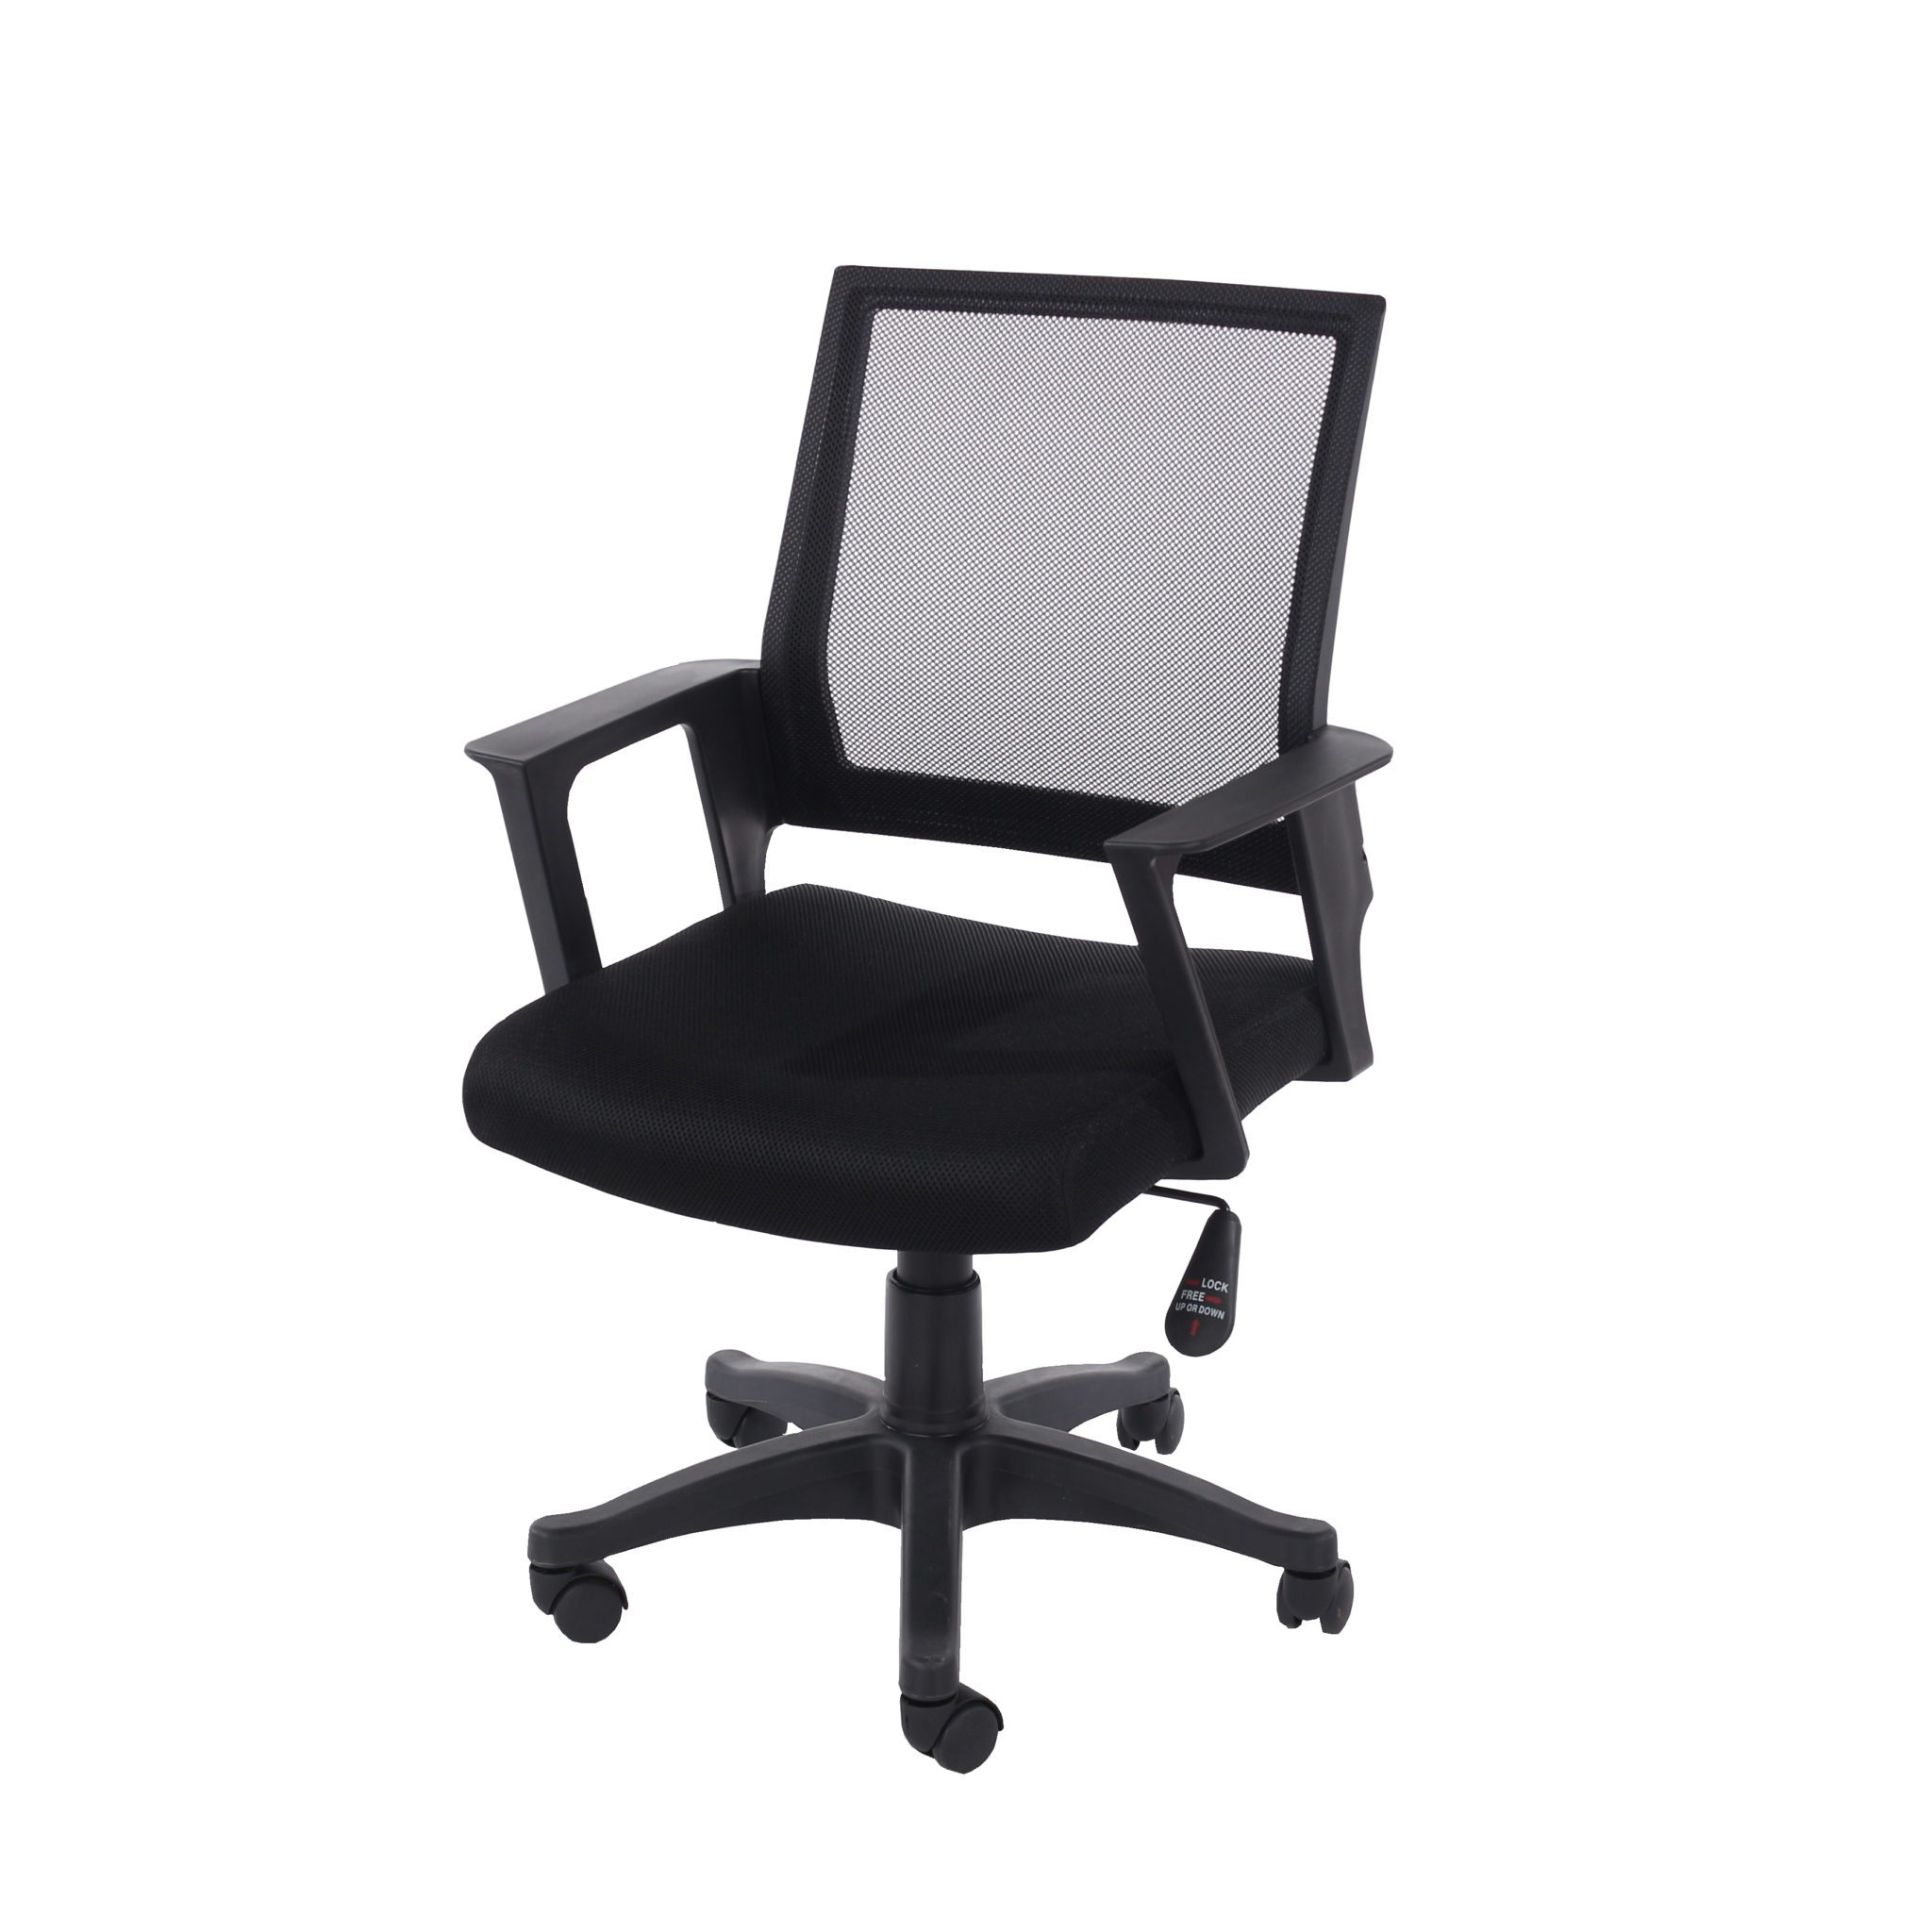 home office chair in black mesh back with black fabric seat with black base